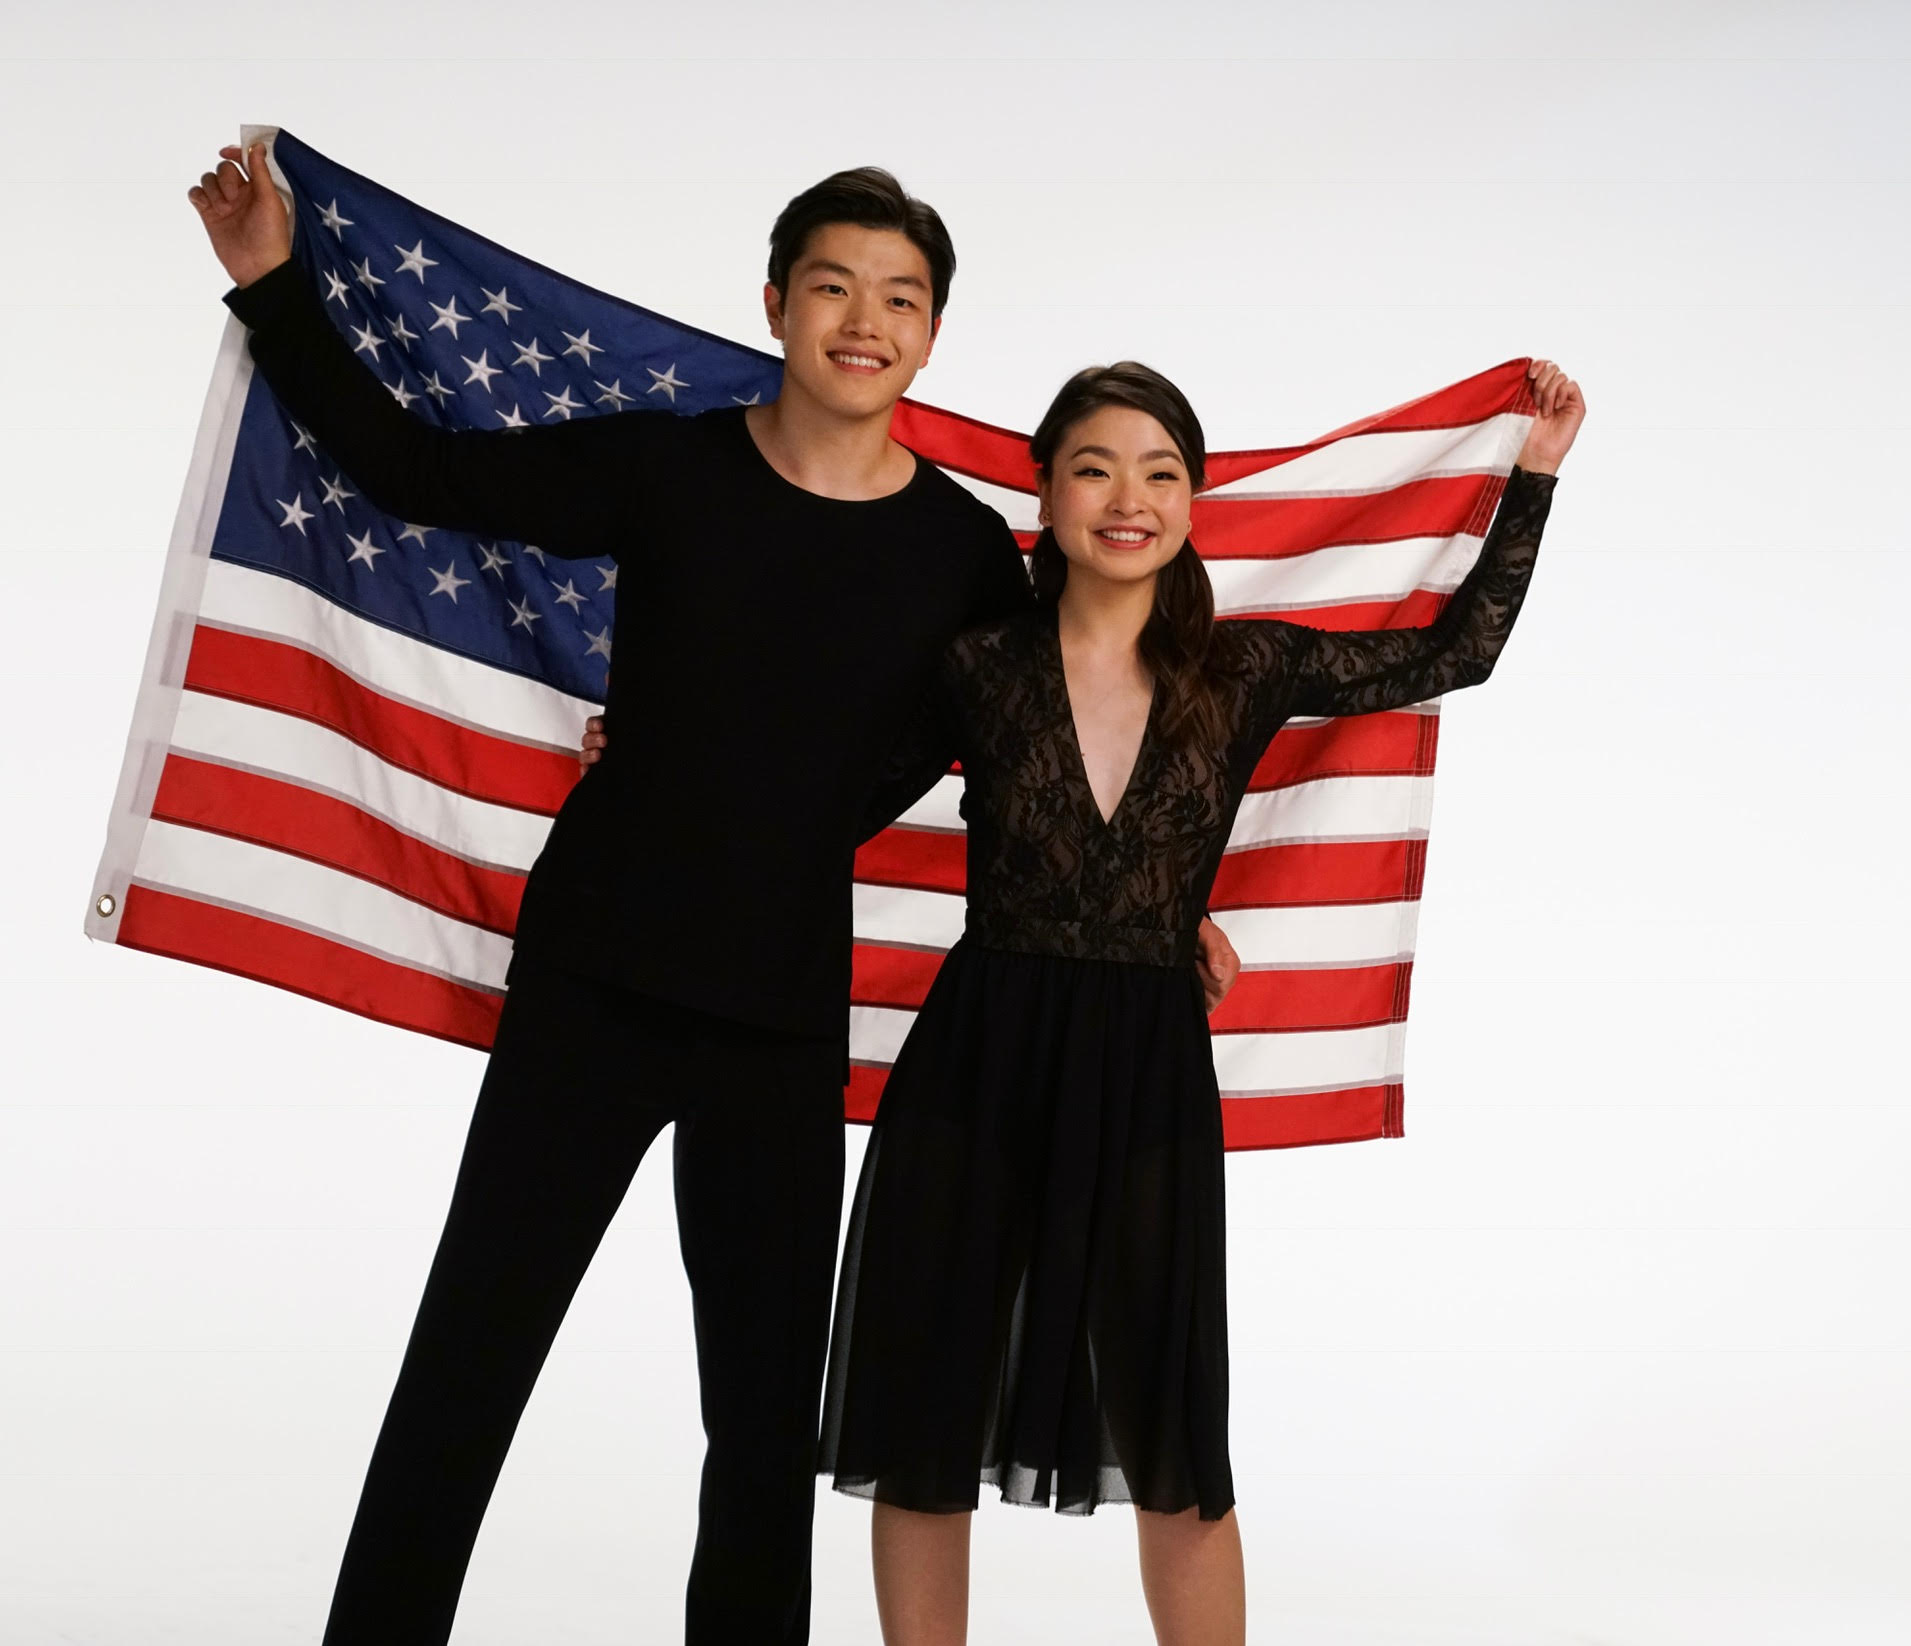 """Maia Shibutani, 23 - After helping Team USA win the bronze in team skate, Maia Shibutani and her then-26-year-old brother, Alex, became the first ice dancers of Asian descent to medal at the Olympics. Then they kept up their winning streak by nabbing the bronze in ice dancing. As an Asian American sibling team, Maia hopes they inspire sibling pairs as well as Asian and Asian American teams to try out ice dancing. In addition to their rigorous training schedule, Maia and Alex enjoy being active on social media, posting regularly on their ShibSibs YouTube channel. Maia says sharing vlogs of training, competitions, and travel on video """"is rewarding because we have the ability to connect to people around the world."""" For her, taking part in the 2018 Pyeongchang Olympics was a dream come true: """"There is no other competition like the Olympics and just thinking about the feeling I want to have at the end of our competition helps give me the strength and determination I need to persevere and overcome exhaustion and challenges."""" — M.Y.Image Credit:Ryan Feng"""